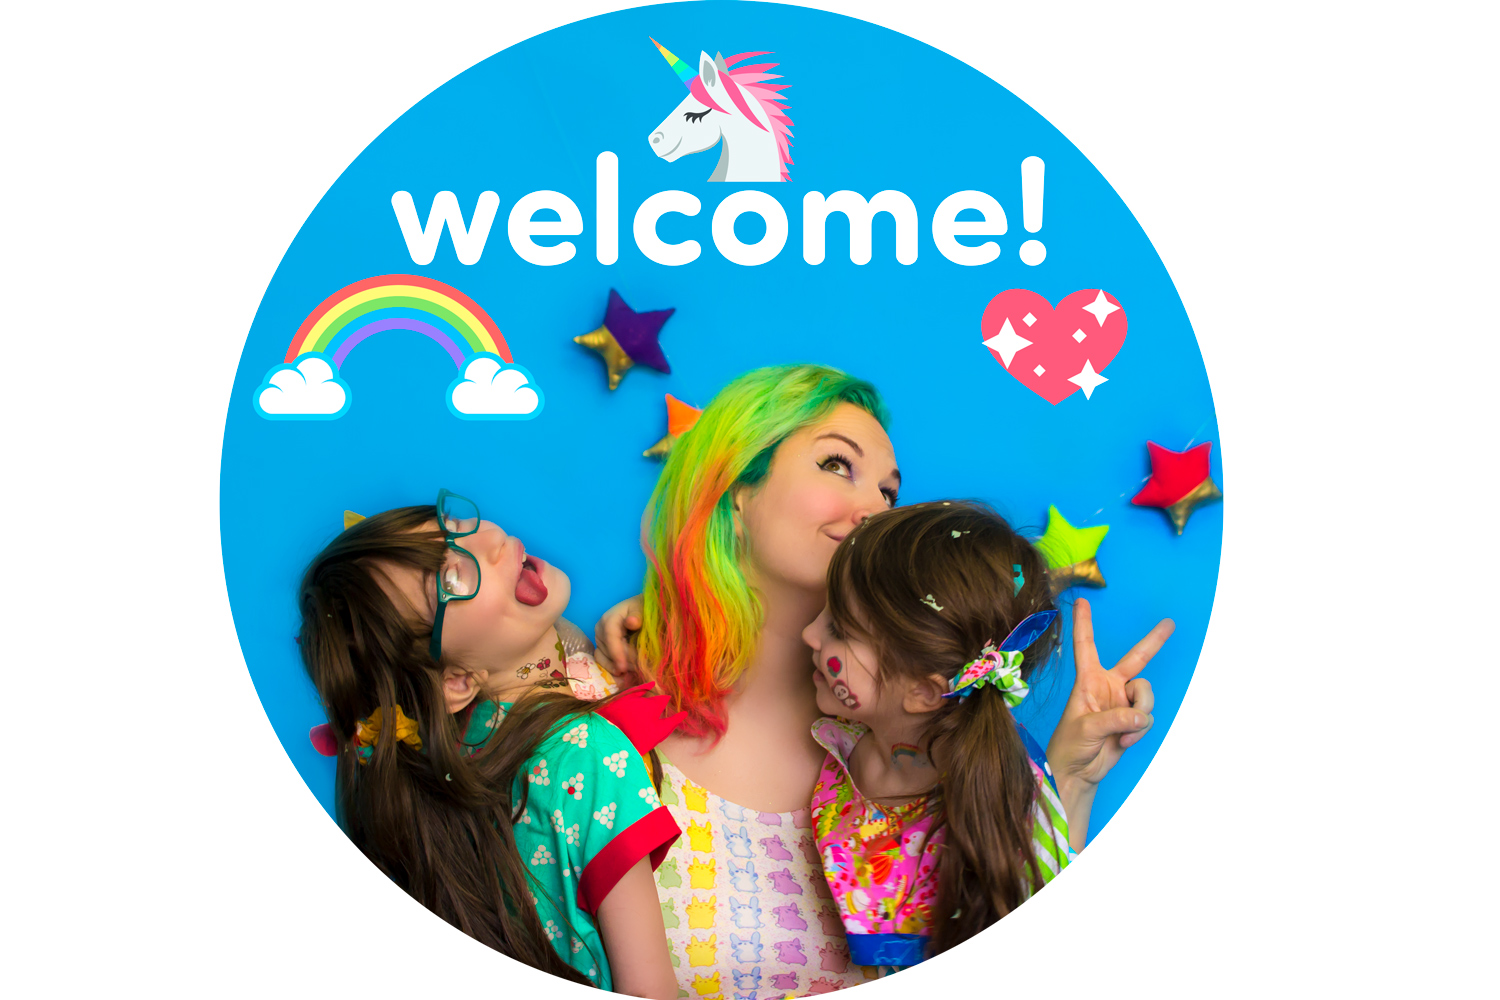 YAY! You're here!  I'm so happy! I'm Kat!  This is my little pattern shop  as well as the place where I share all of my sewing projects, chibi cosplay fashion, and DIY/tutorials! Everything around here is action-packed with color, silliness, and tons of kawaii stuff!  Let's go on an adventure together!